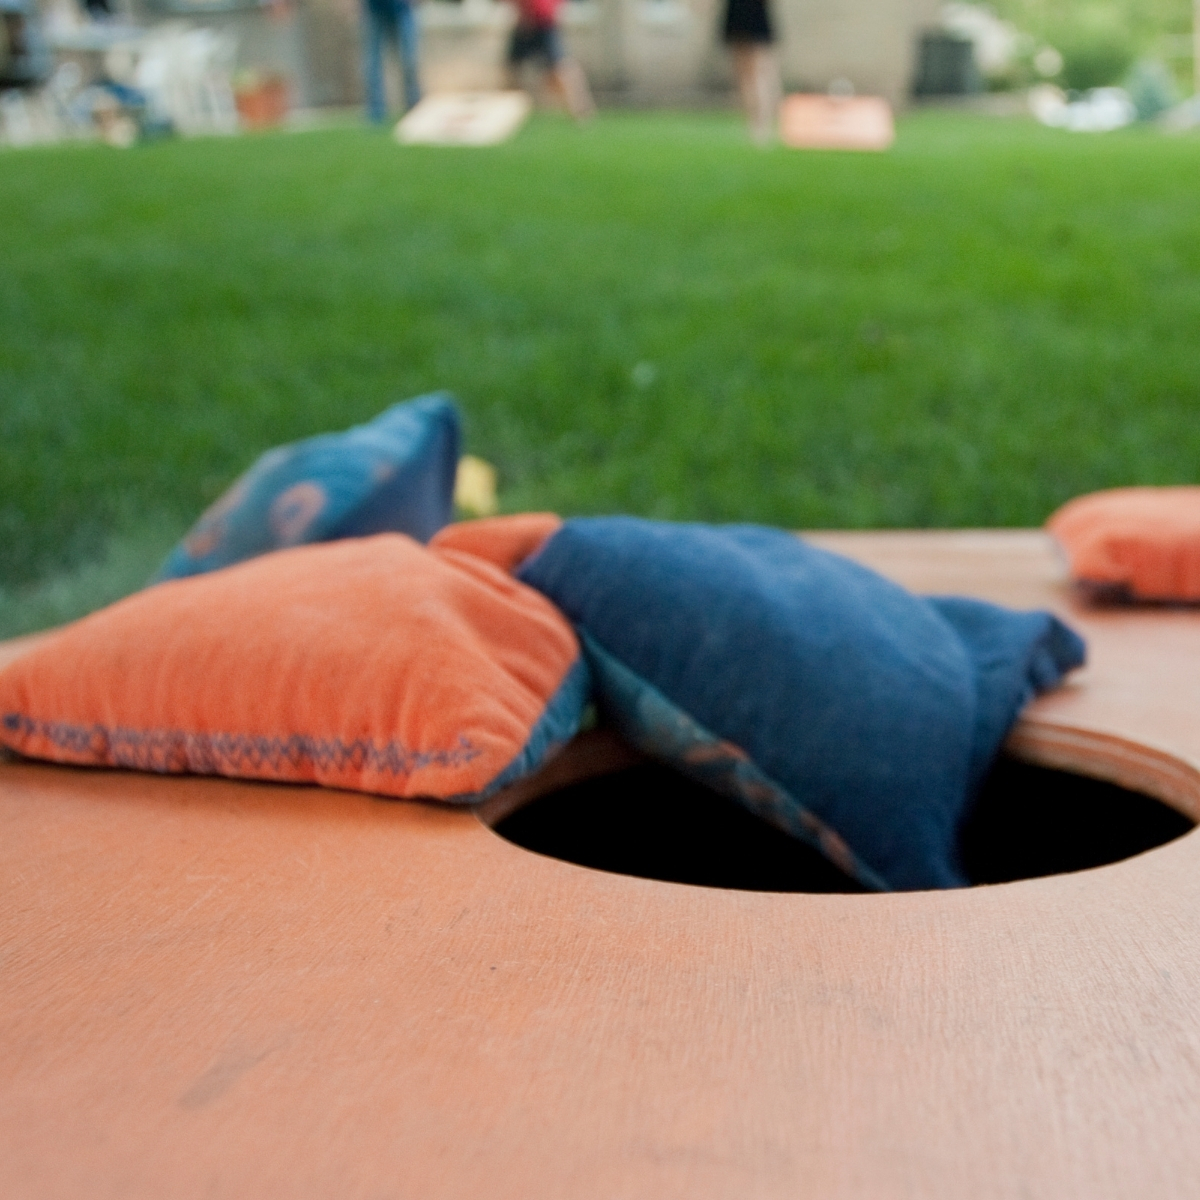 colorful bean bags on a corn hole board